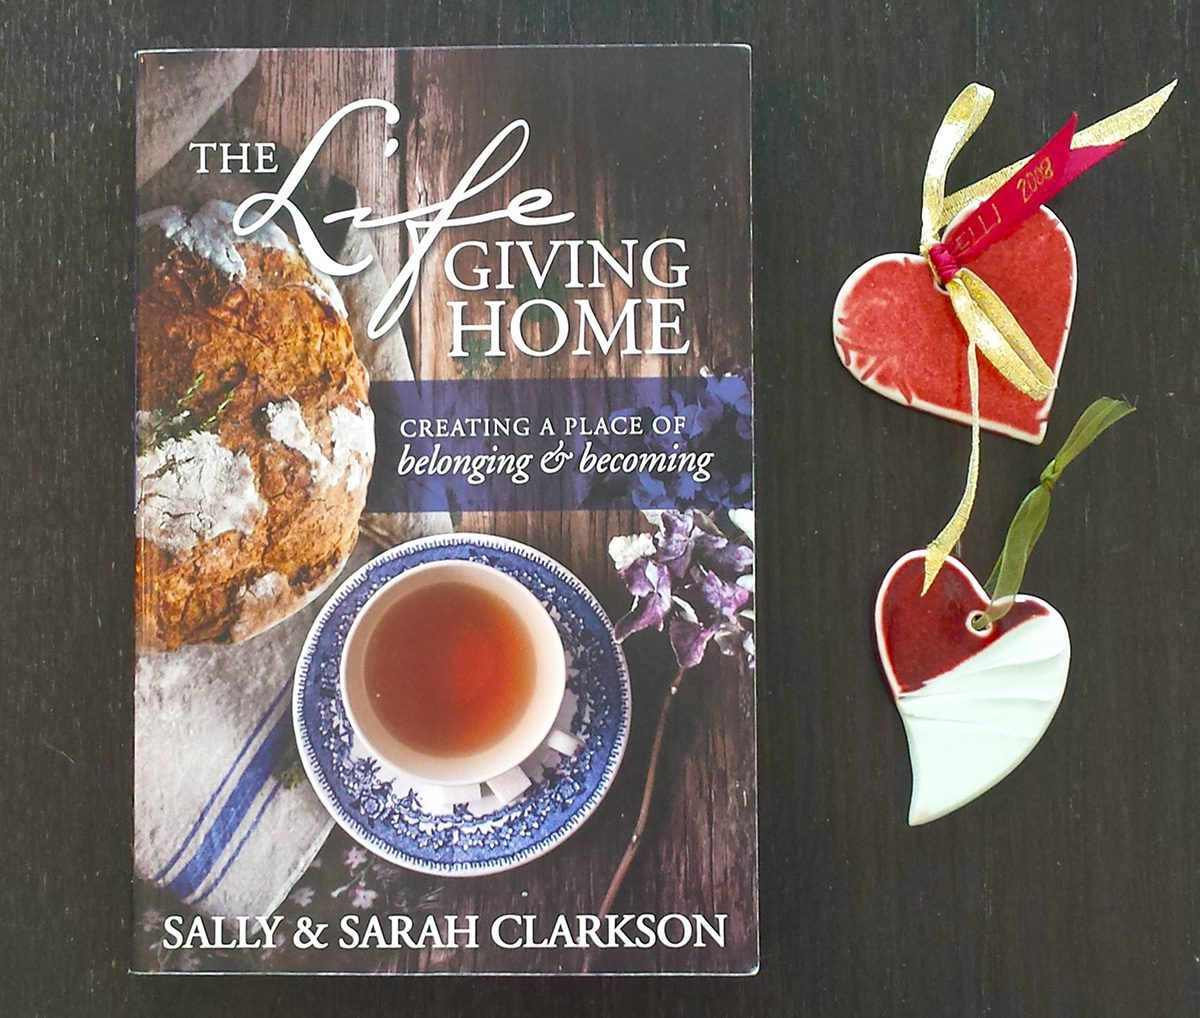 A Culture of Love – February Lifegiving Home